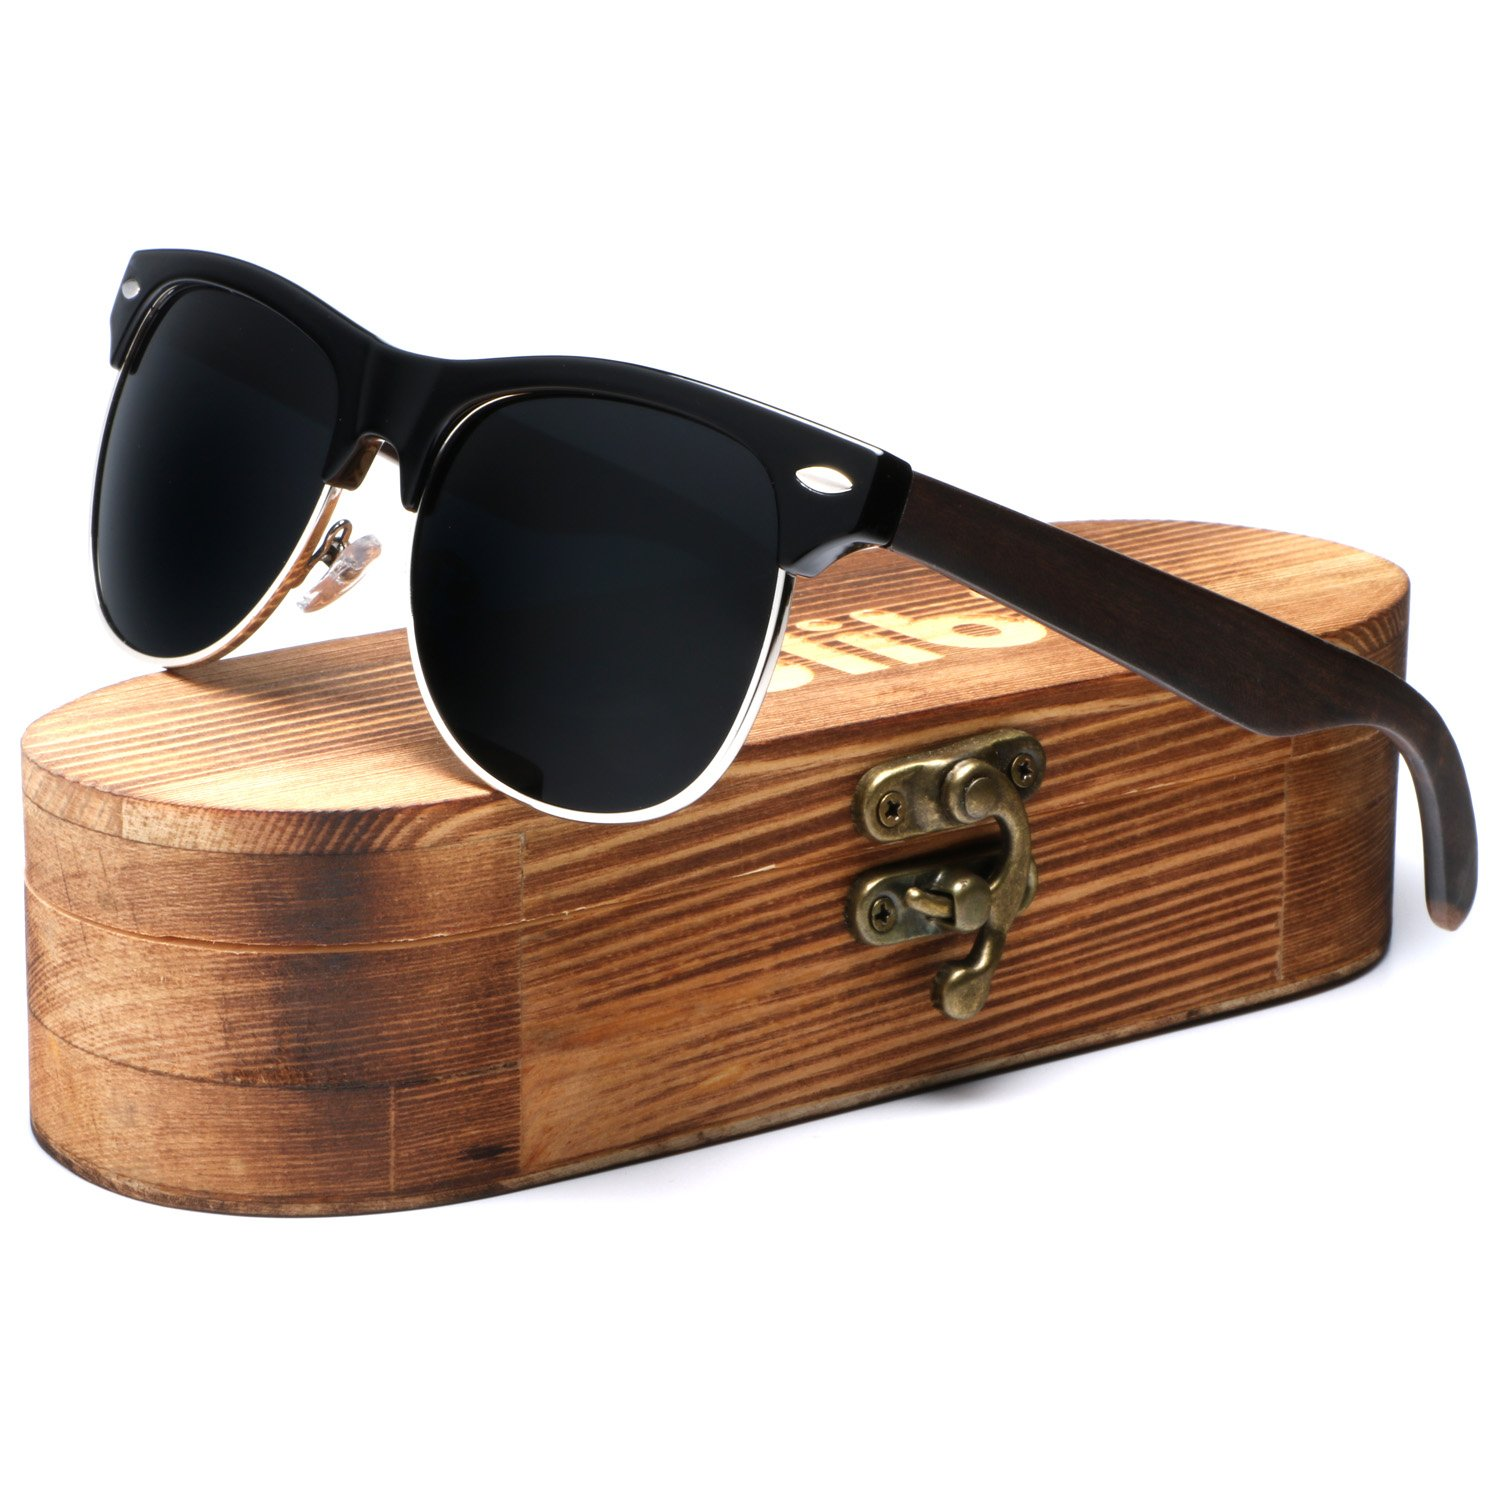 42064f89527 Amazon.com  Ablibi Mens Bamboo Wooden Sunglasses Semi Rimless Wood Sunglasses  Polarized in Original Boxes (ebony